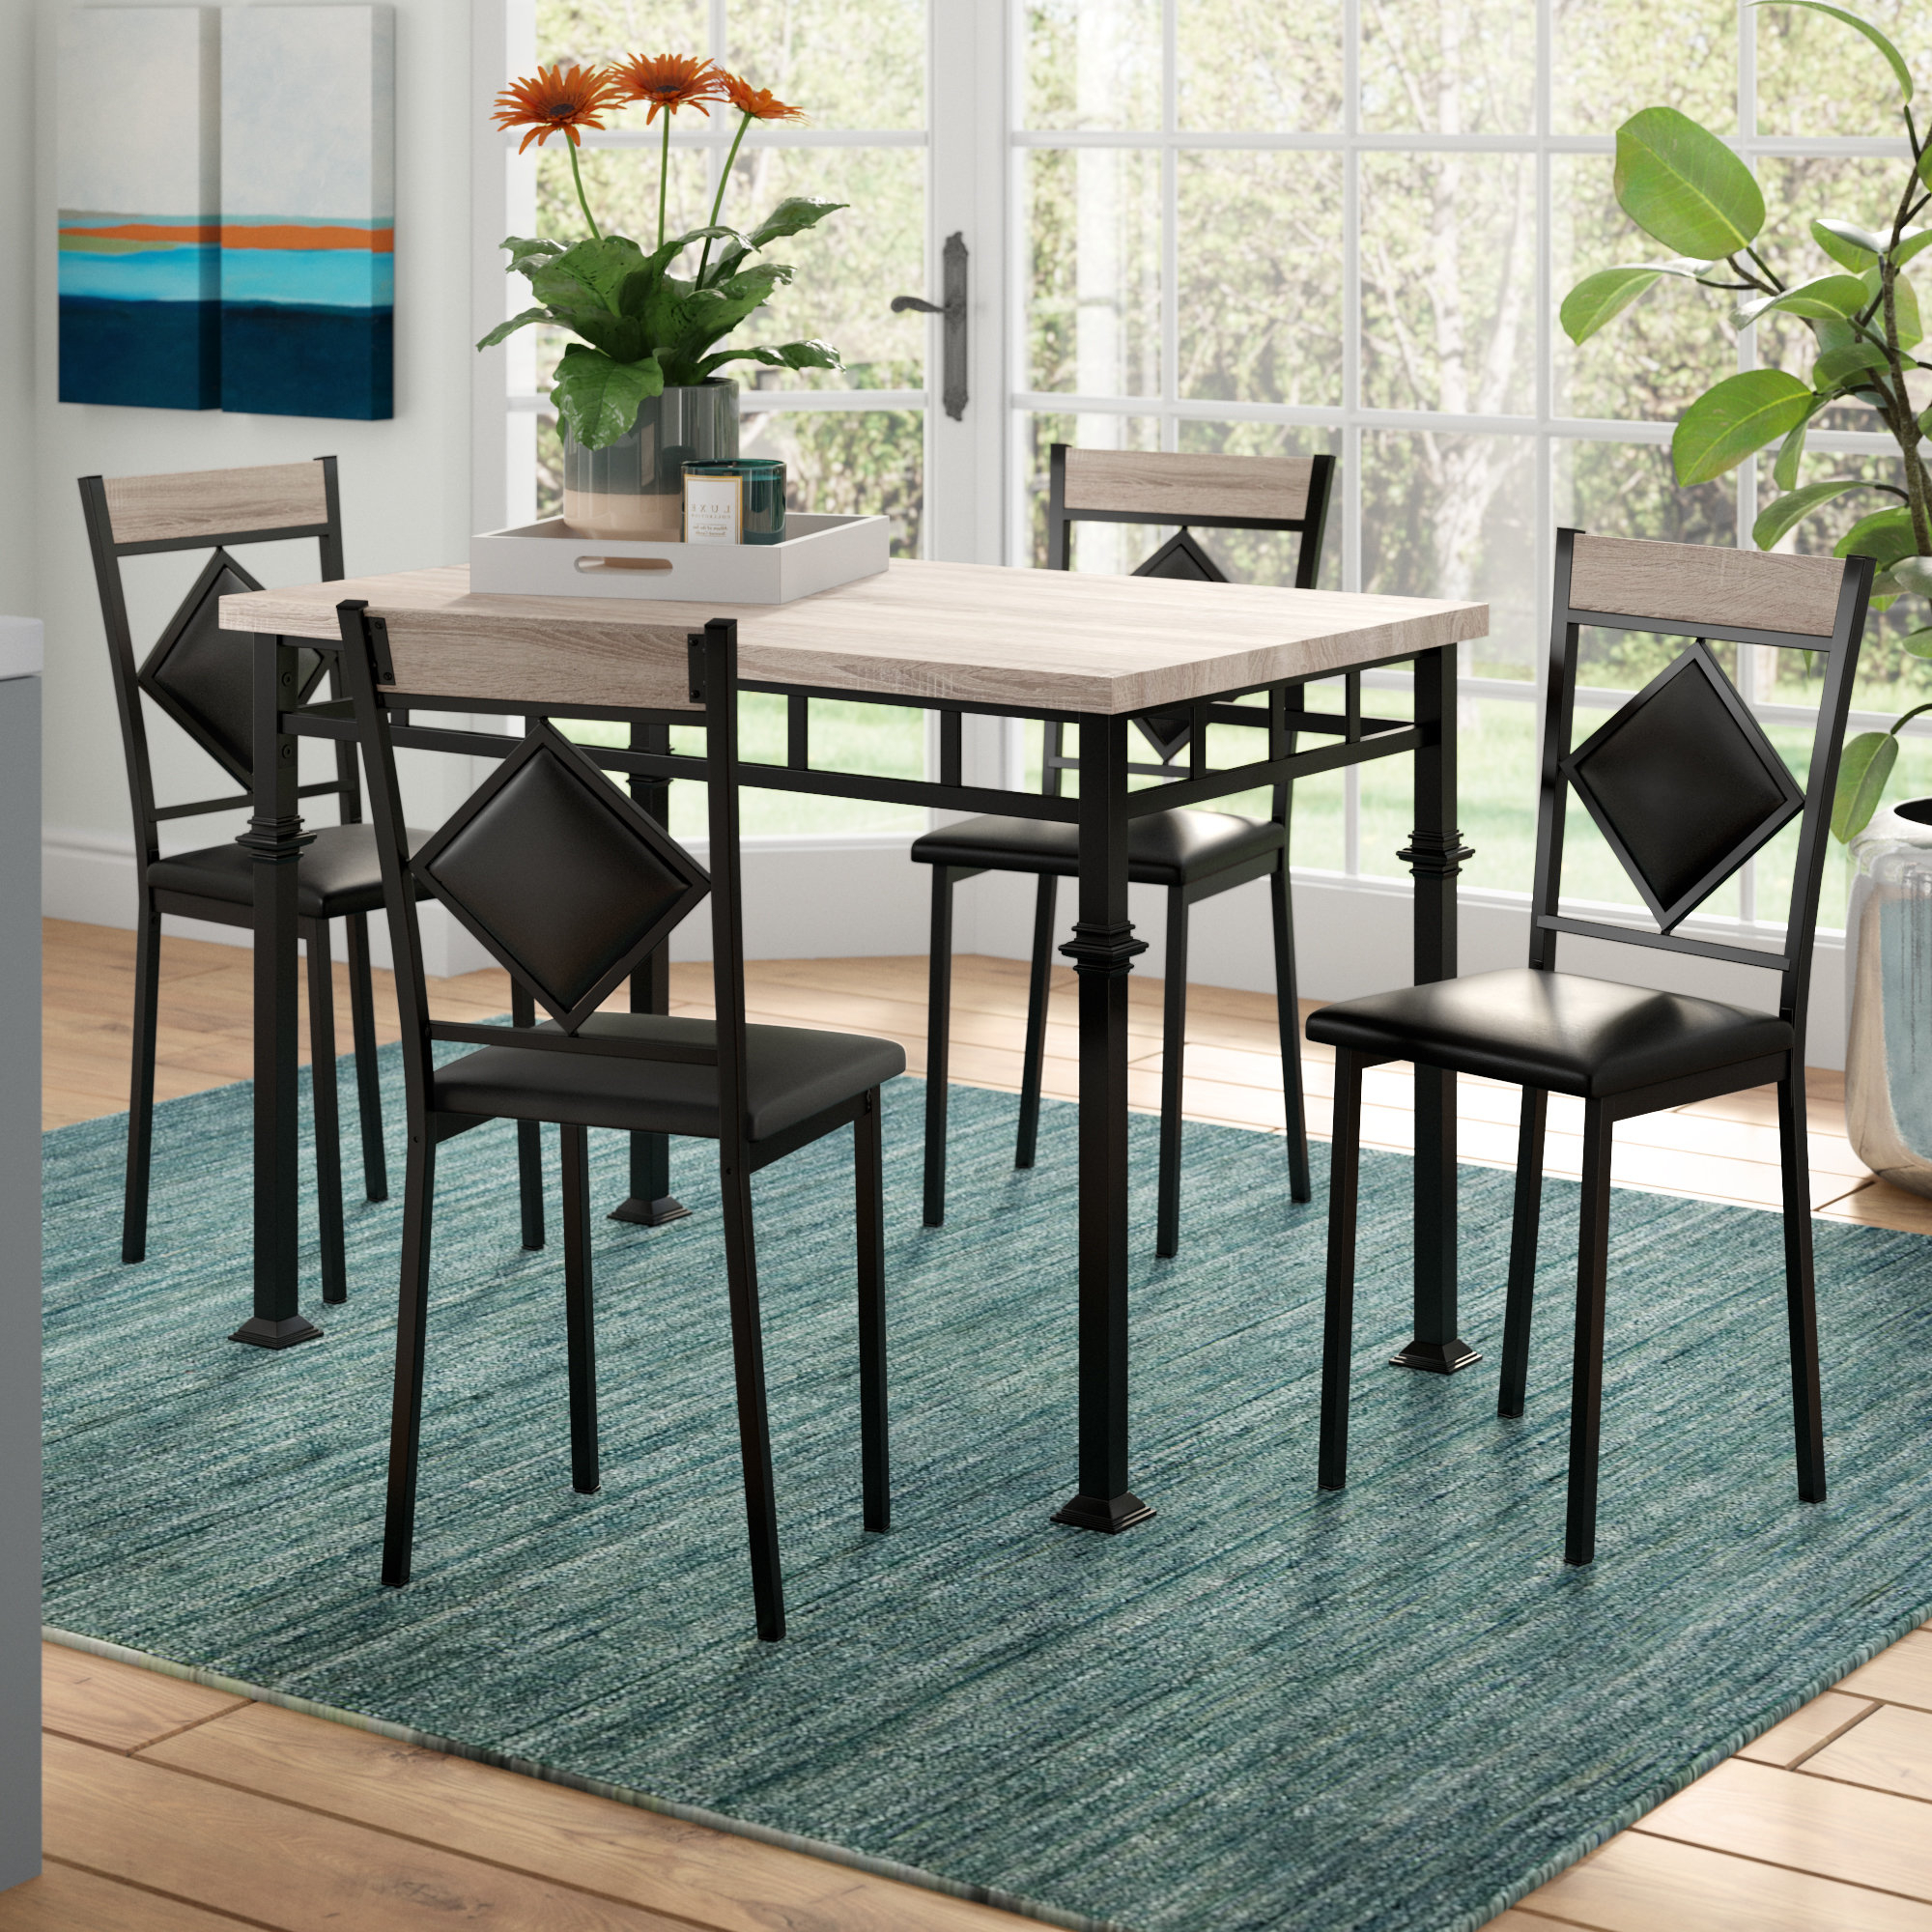 Wayfair Throughout Current Autberry 5 Piece Dining Sets (View 4 of 25)